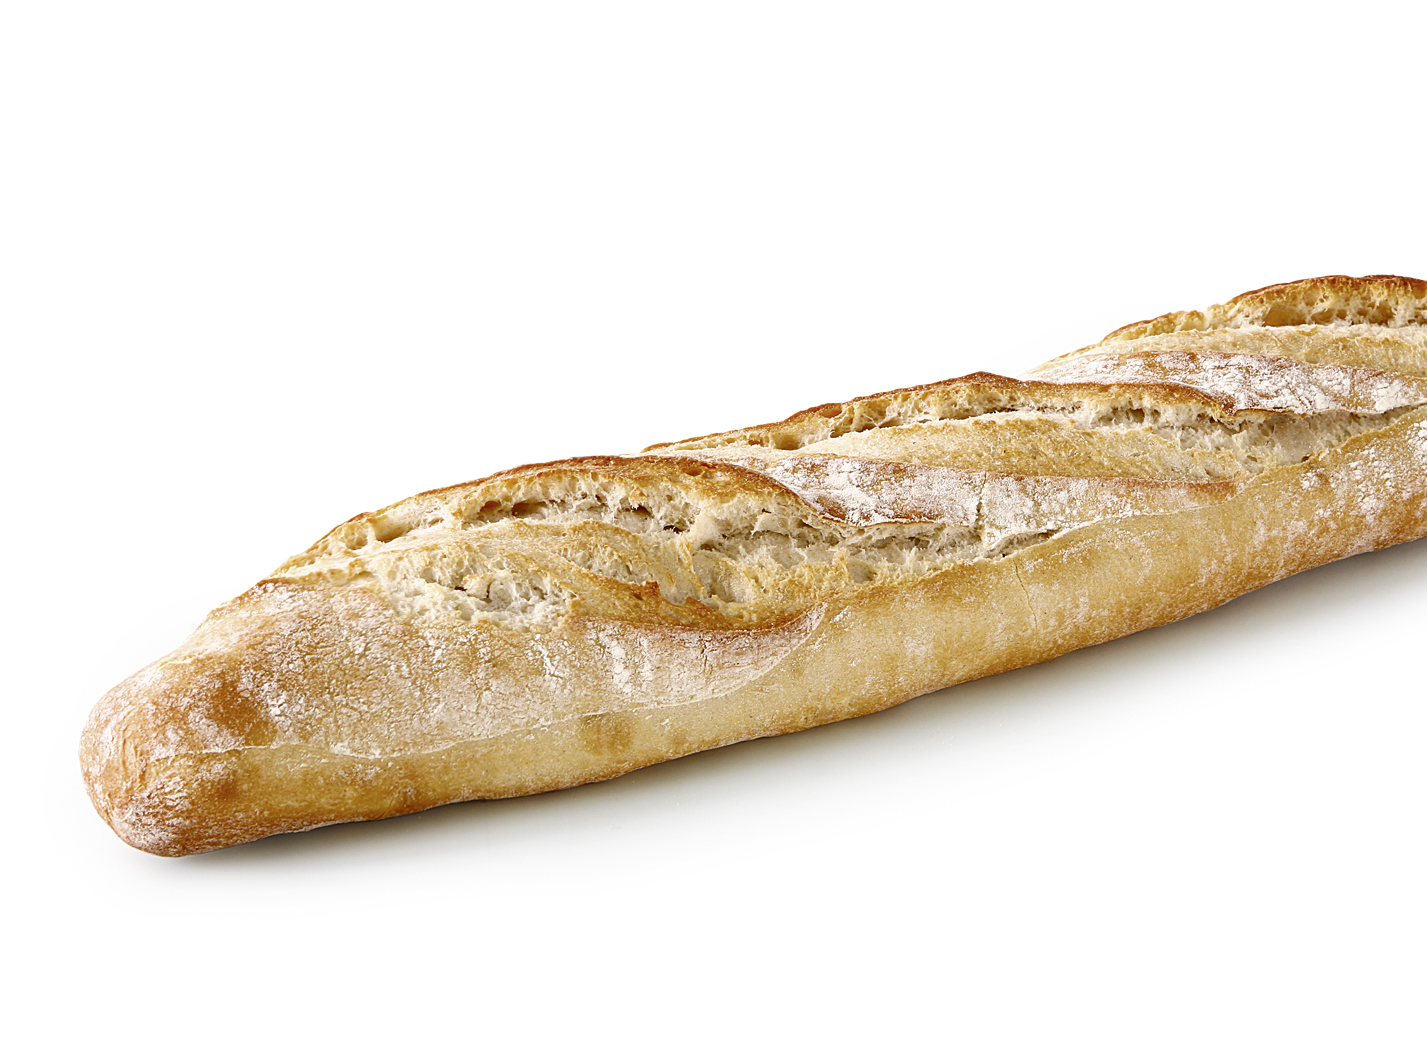 Stone Oven Baguette - Wheat bread with three diagonal cuts and pointed ends/ the surface has a rustic look and is slightly floured/ baked in the stone oven length: 46 cm